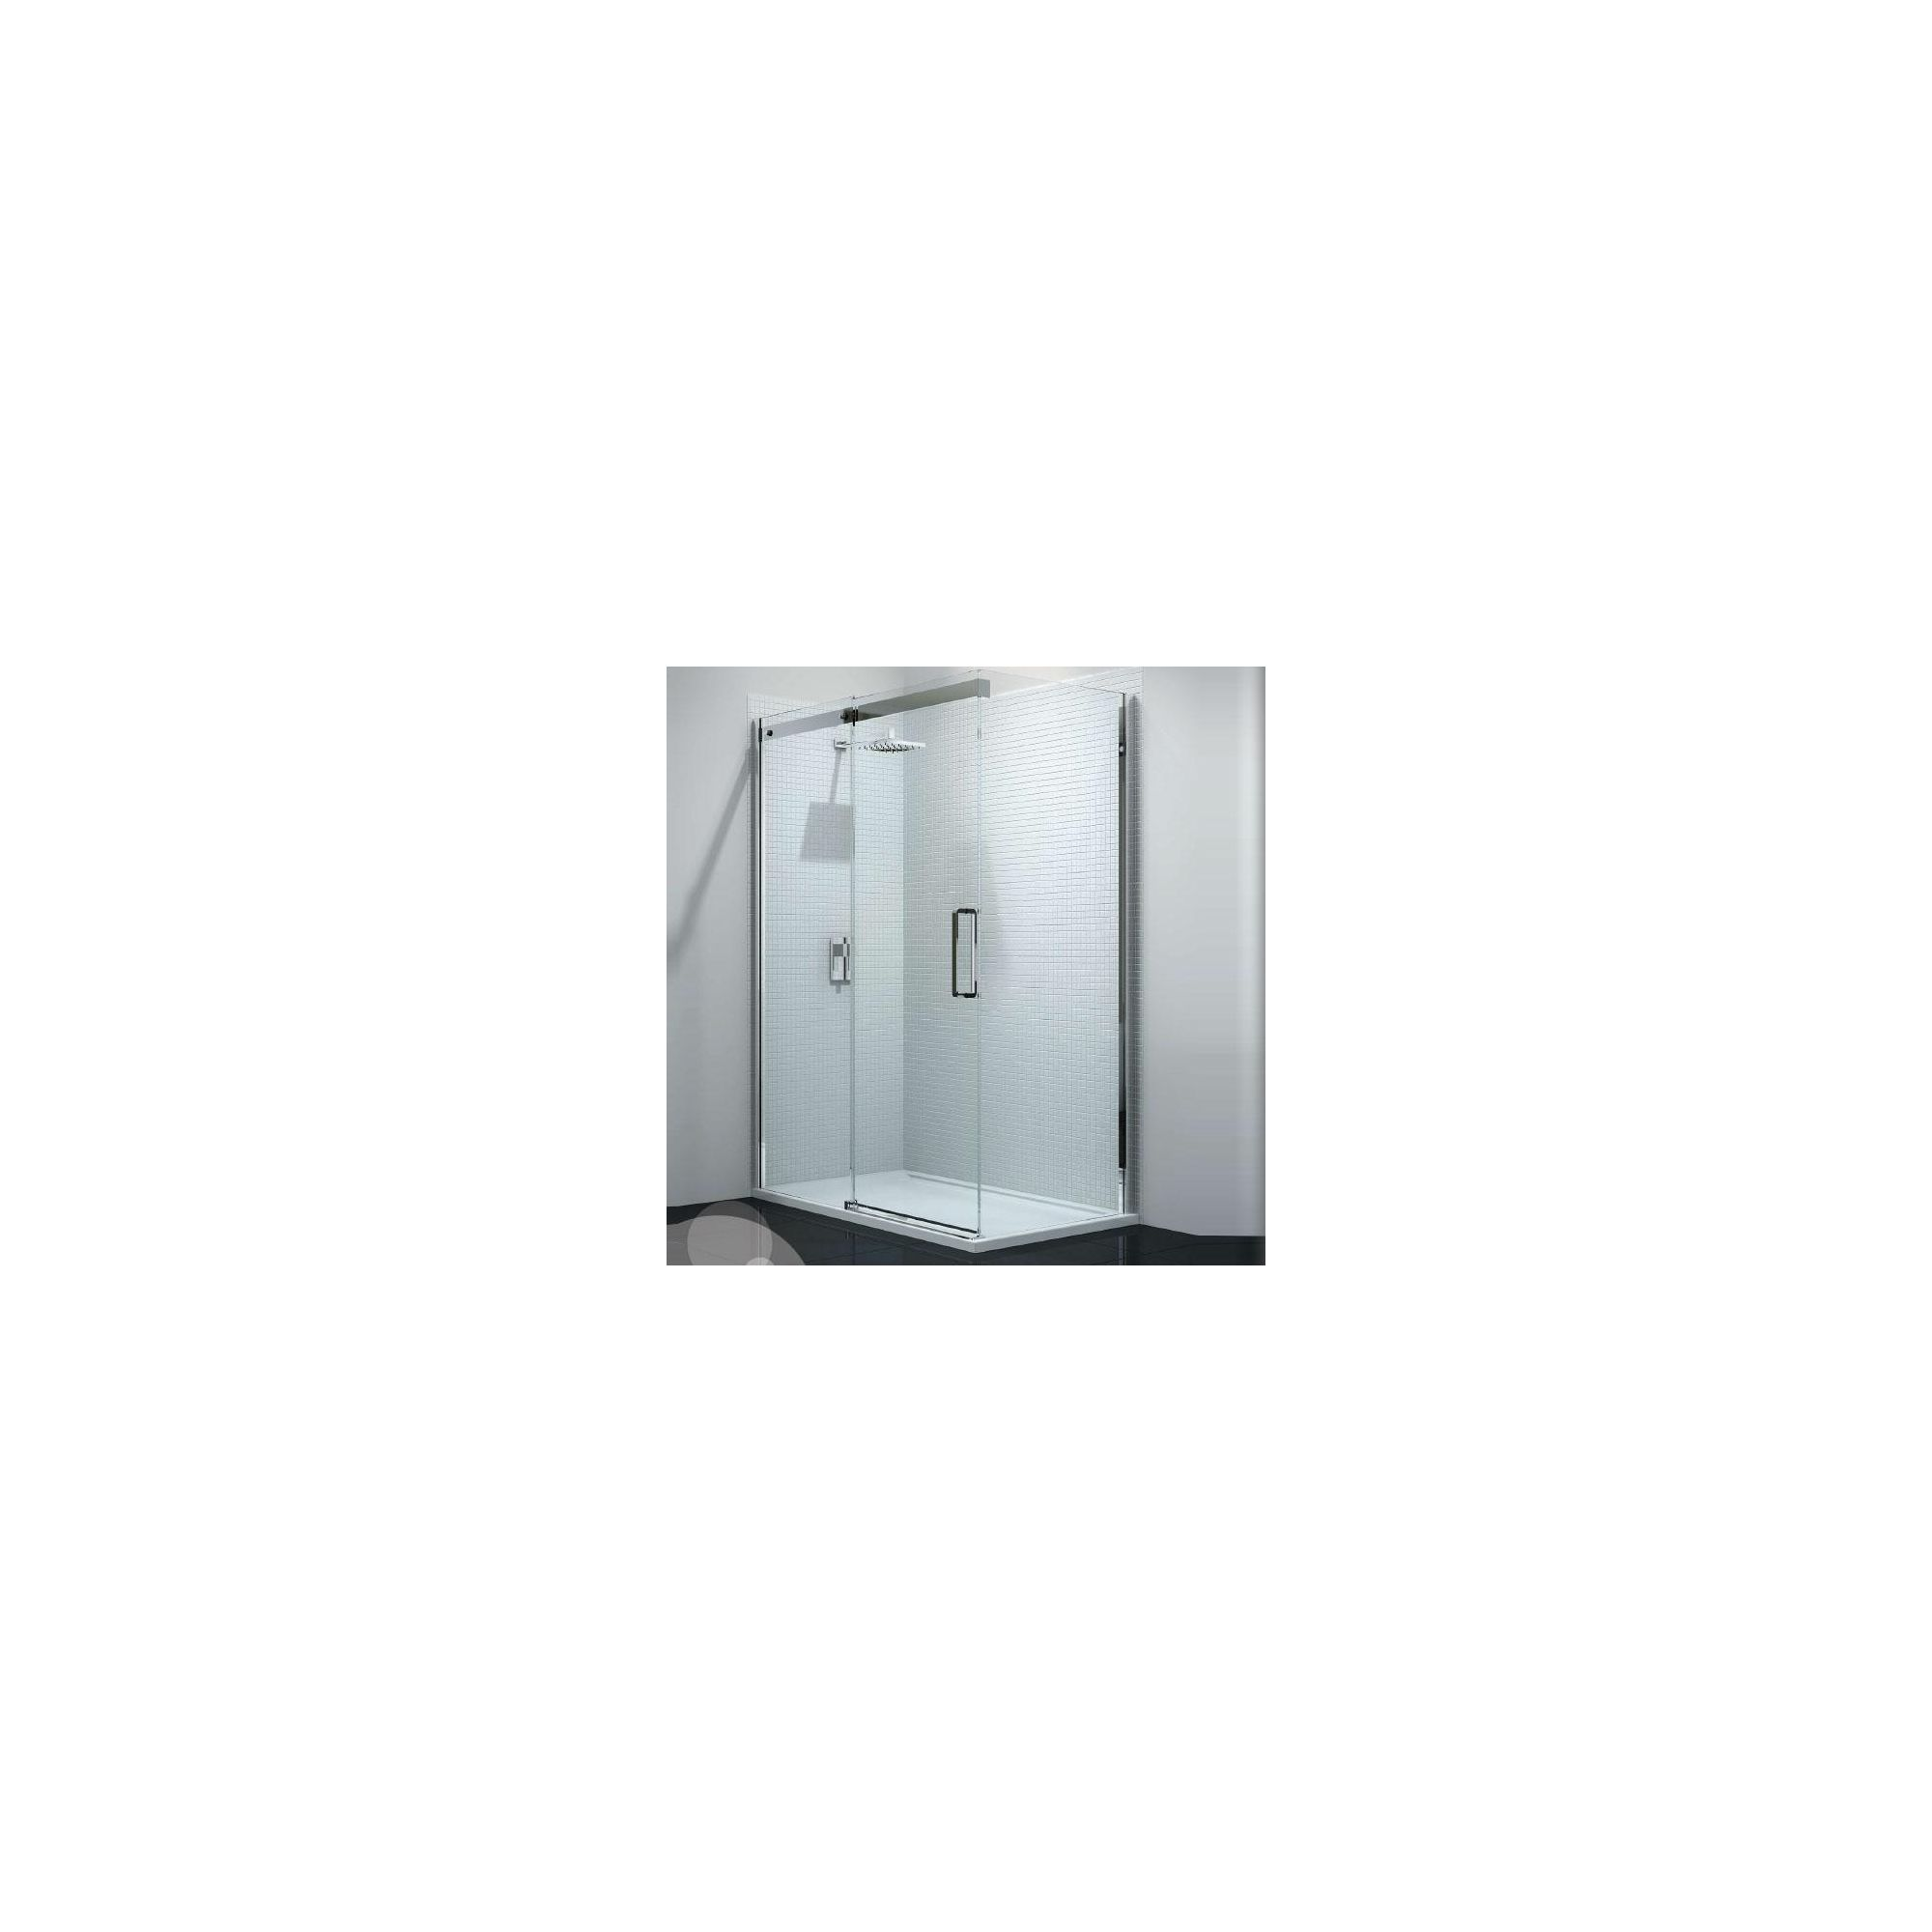 Merlyn Vivid Ten Sliding Door Shower Enclosure, 1200mm x 900mm, Low Profile Tray, 10mm Glass at Tesco Direct